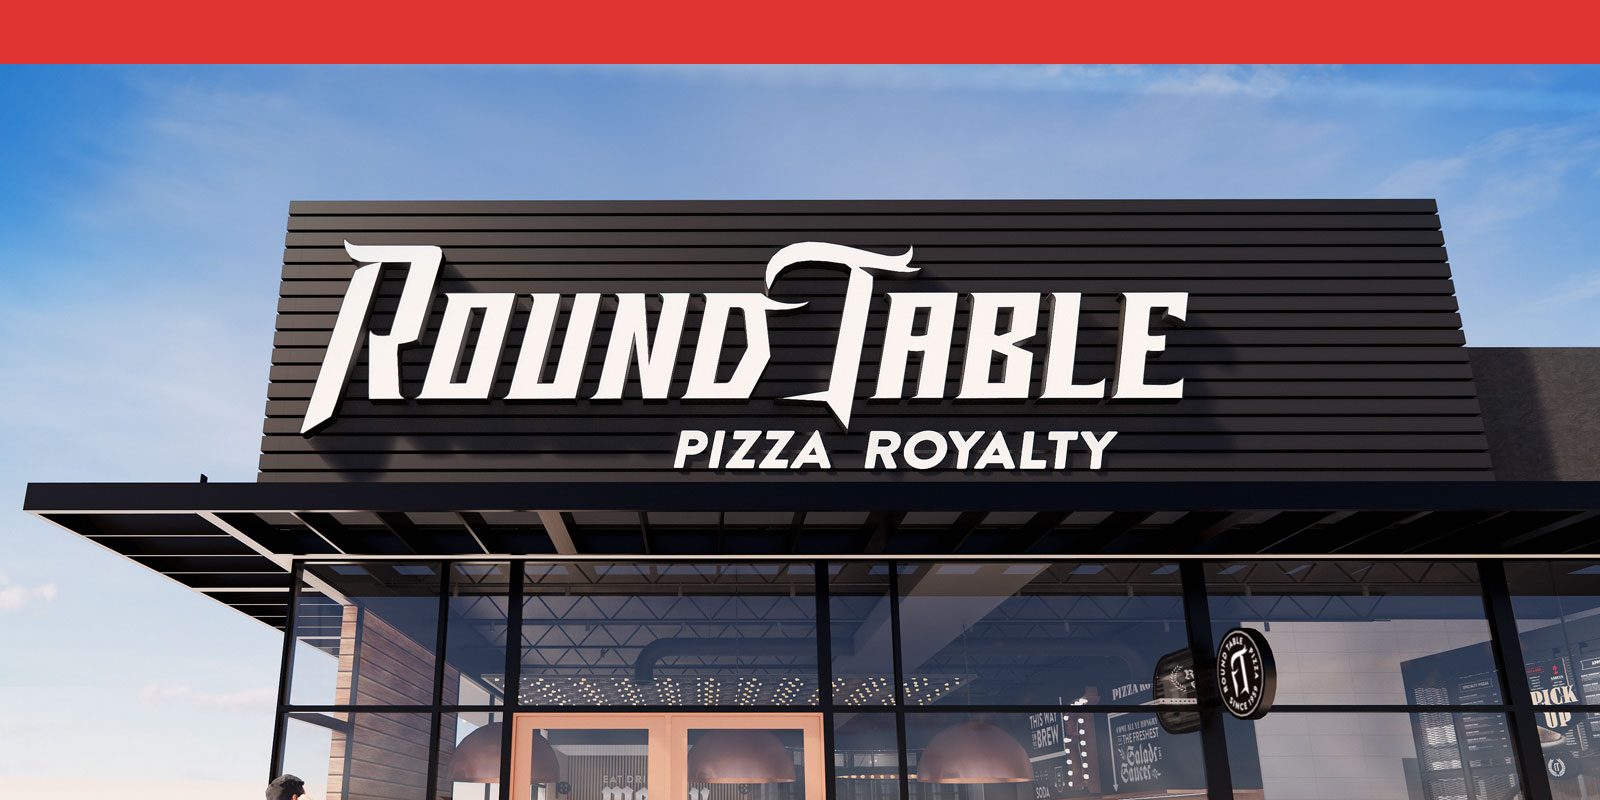 Sterling-Rice Group - Round Table Pizza